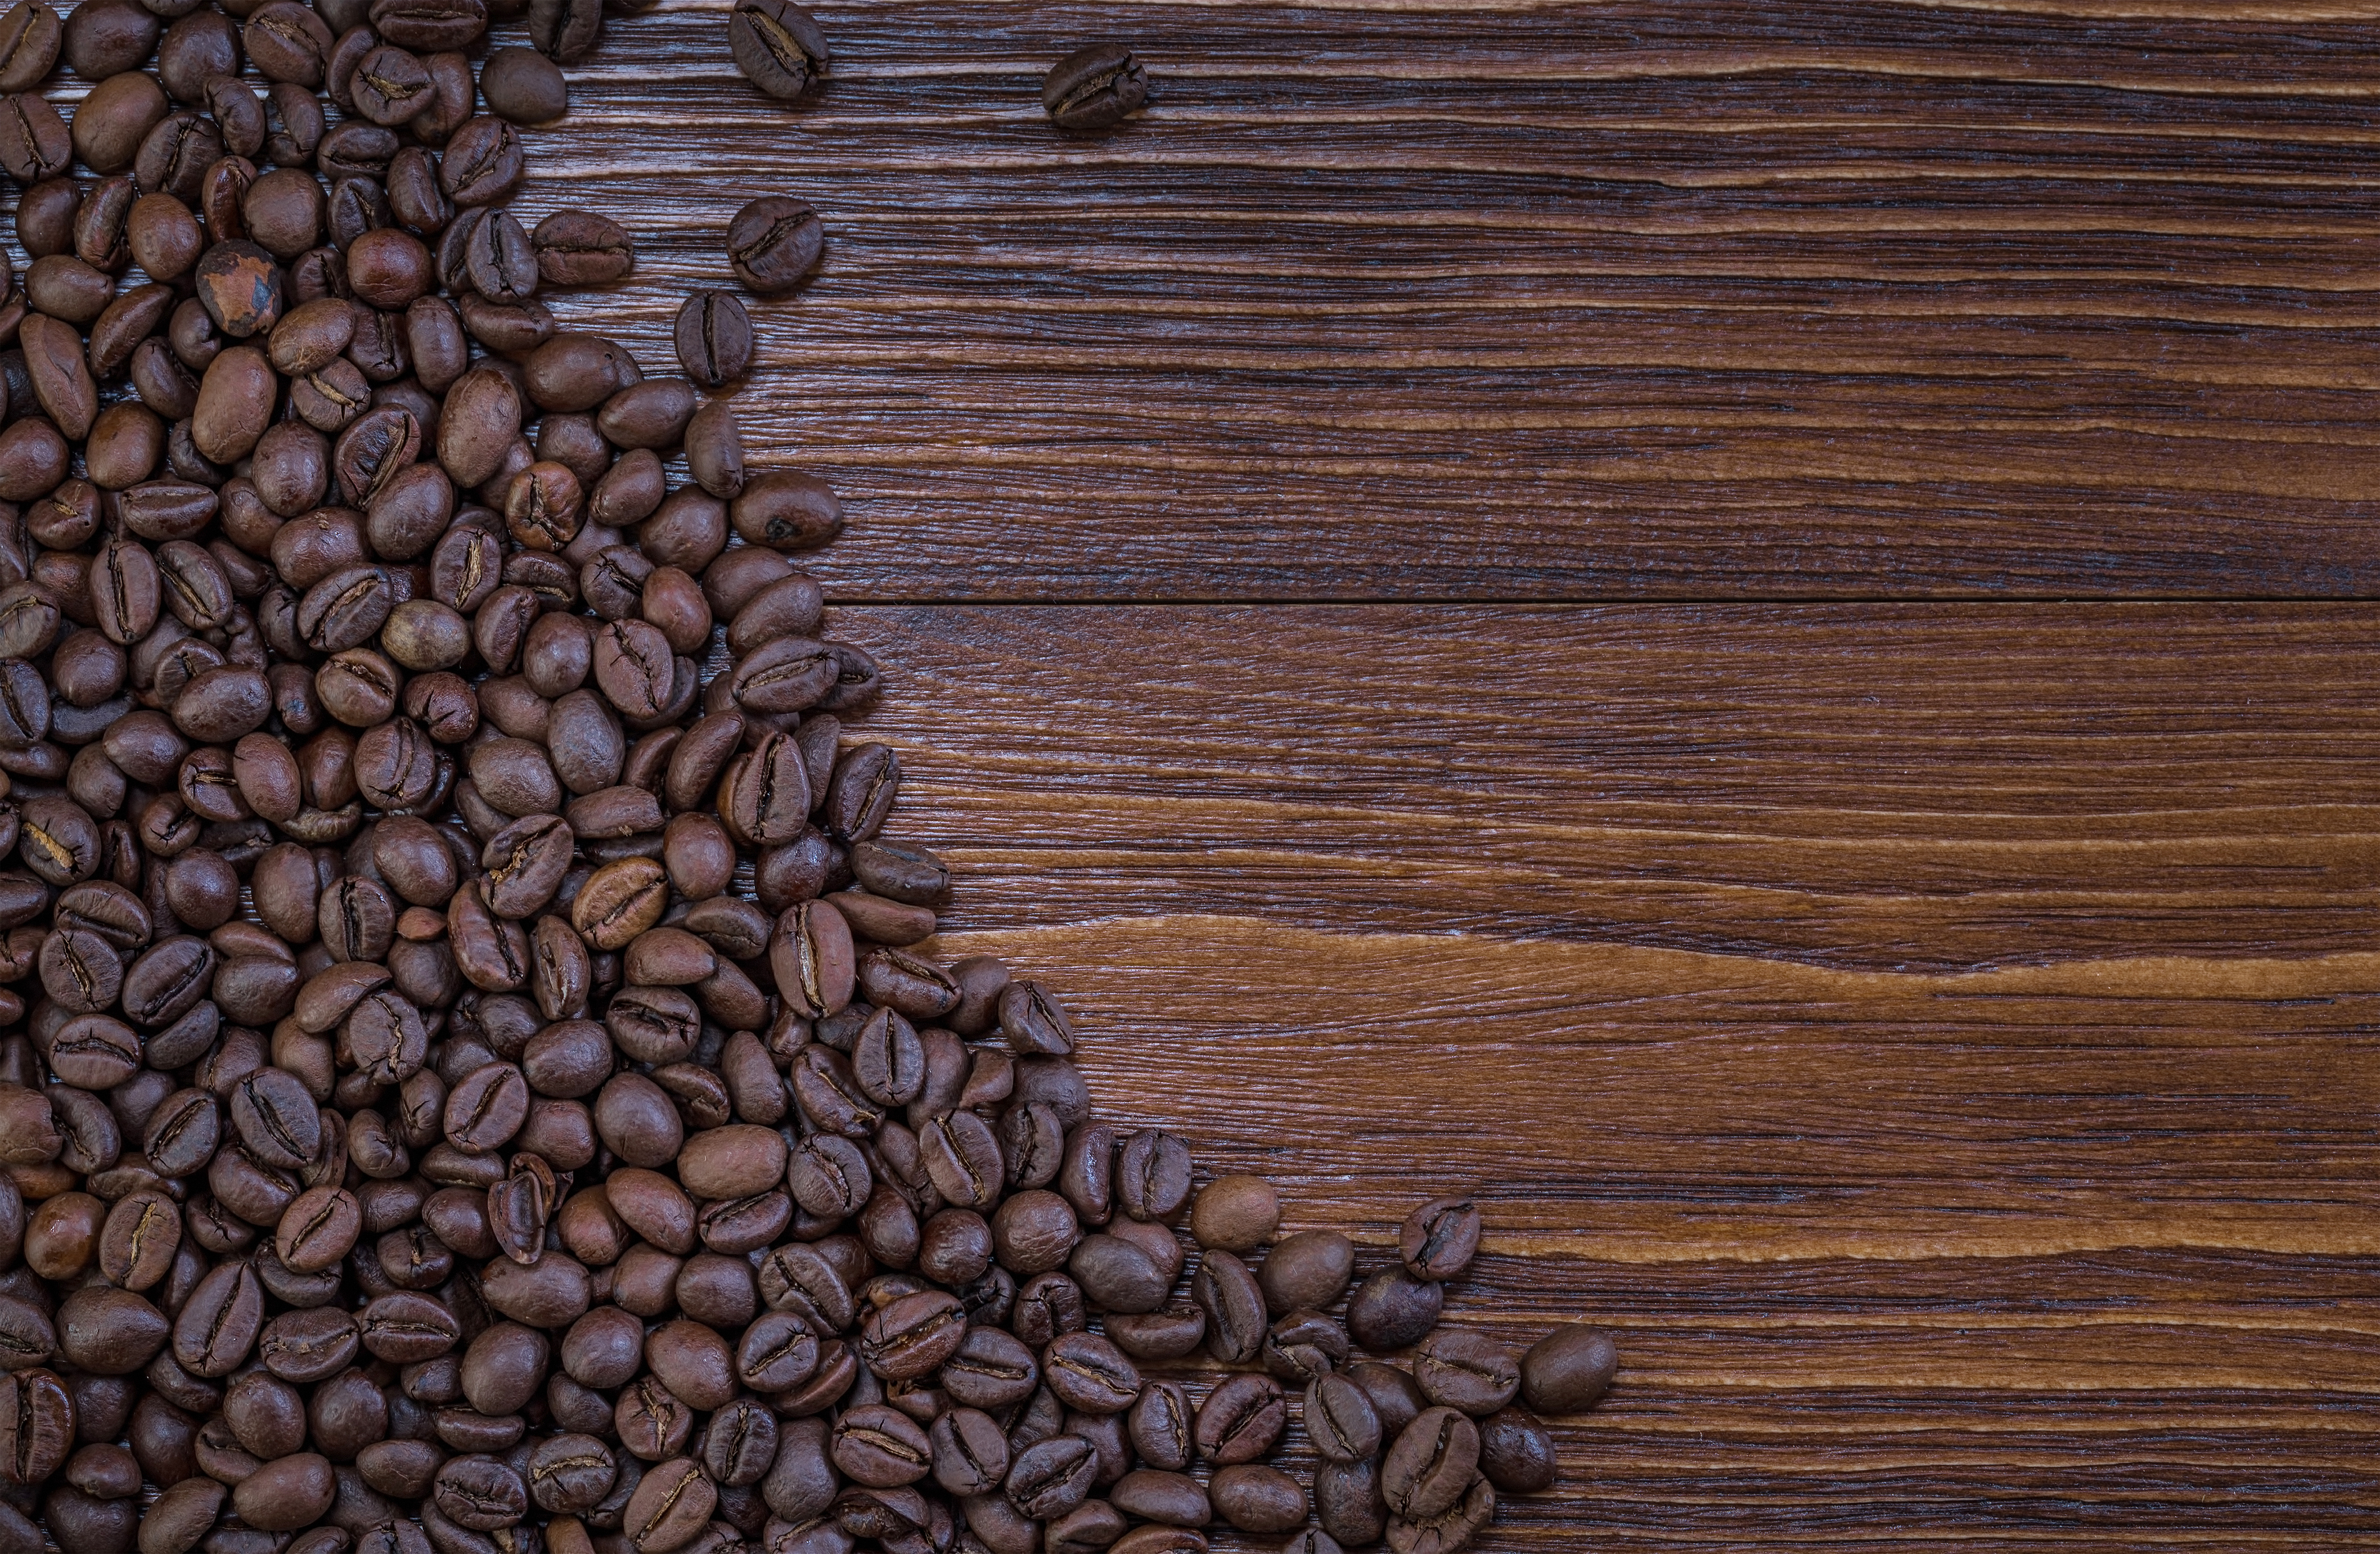 Coffee Beans Wooden Background.